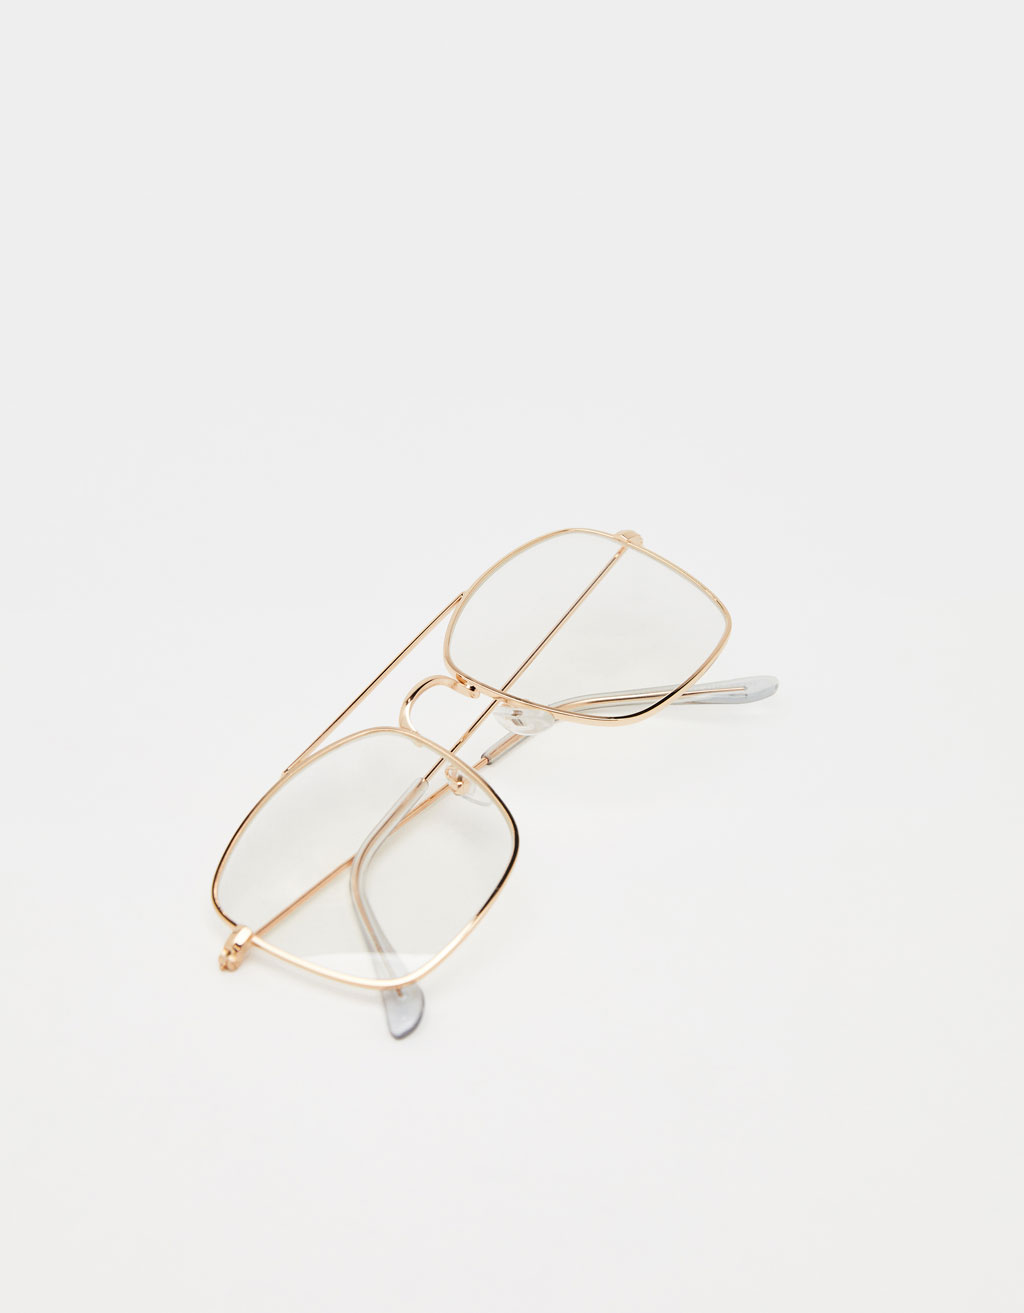 Transparent glasses with metal frame